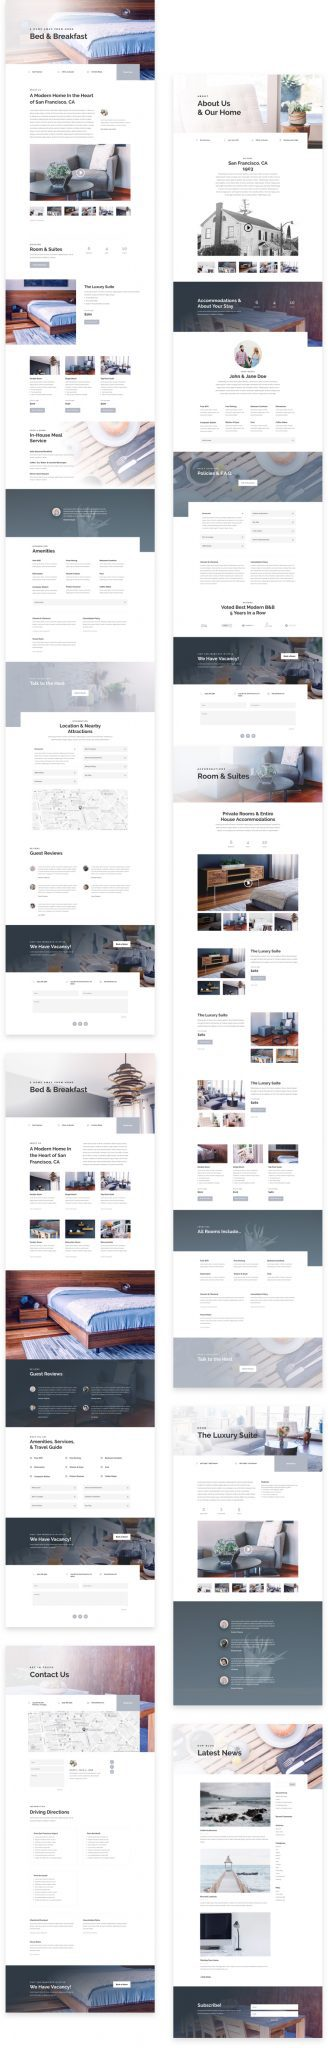 Bed and Breakfast Layout Pack